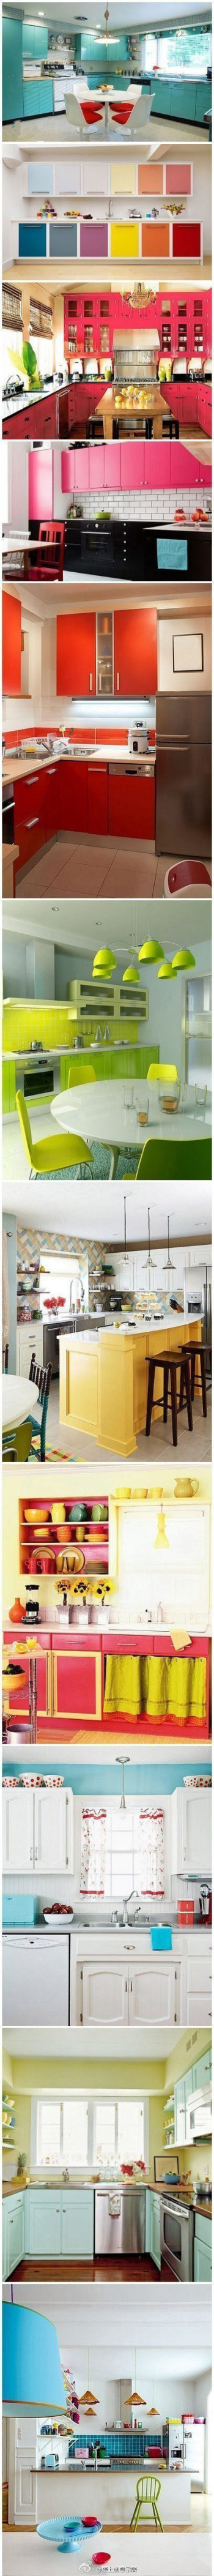 A variety of styles Kitchen Design